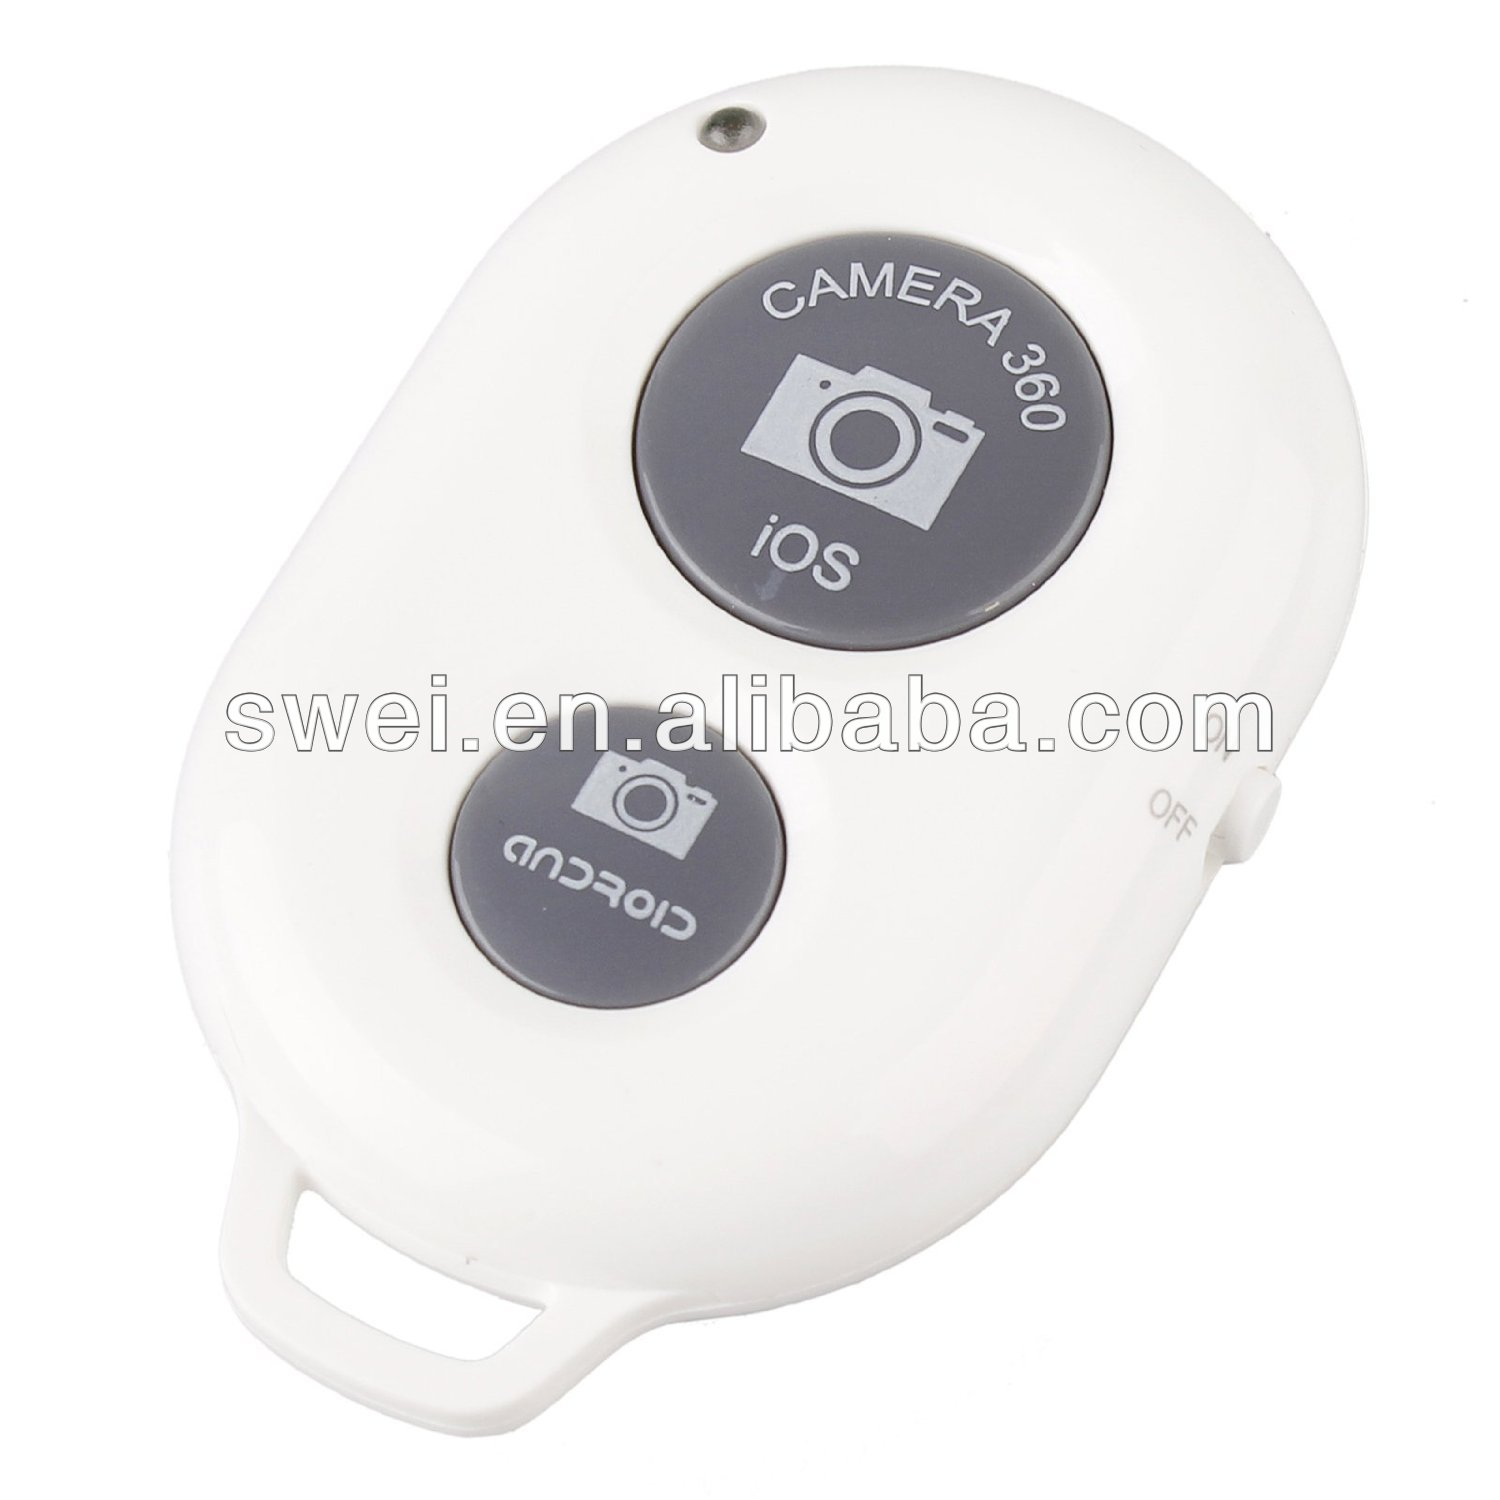 Bluetooth3.0 Wireless Camera Remote Control Shutter Release For iPhone/iPad/Samsung